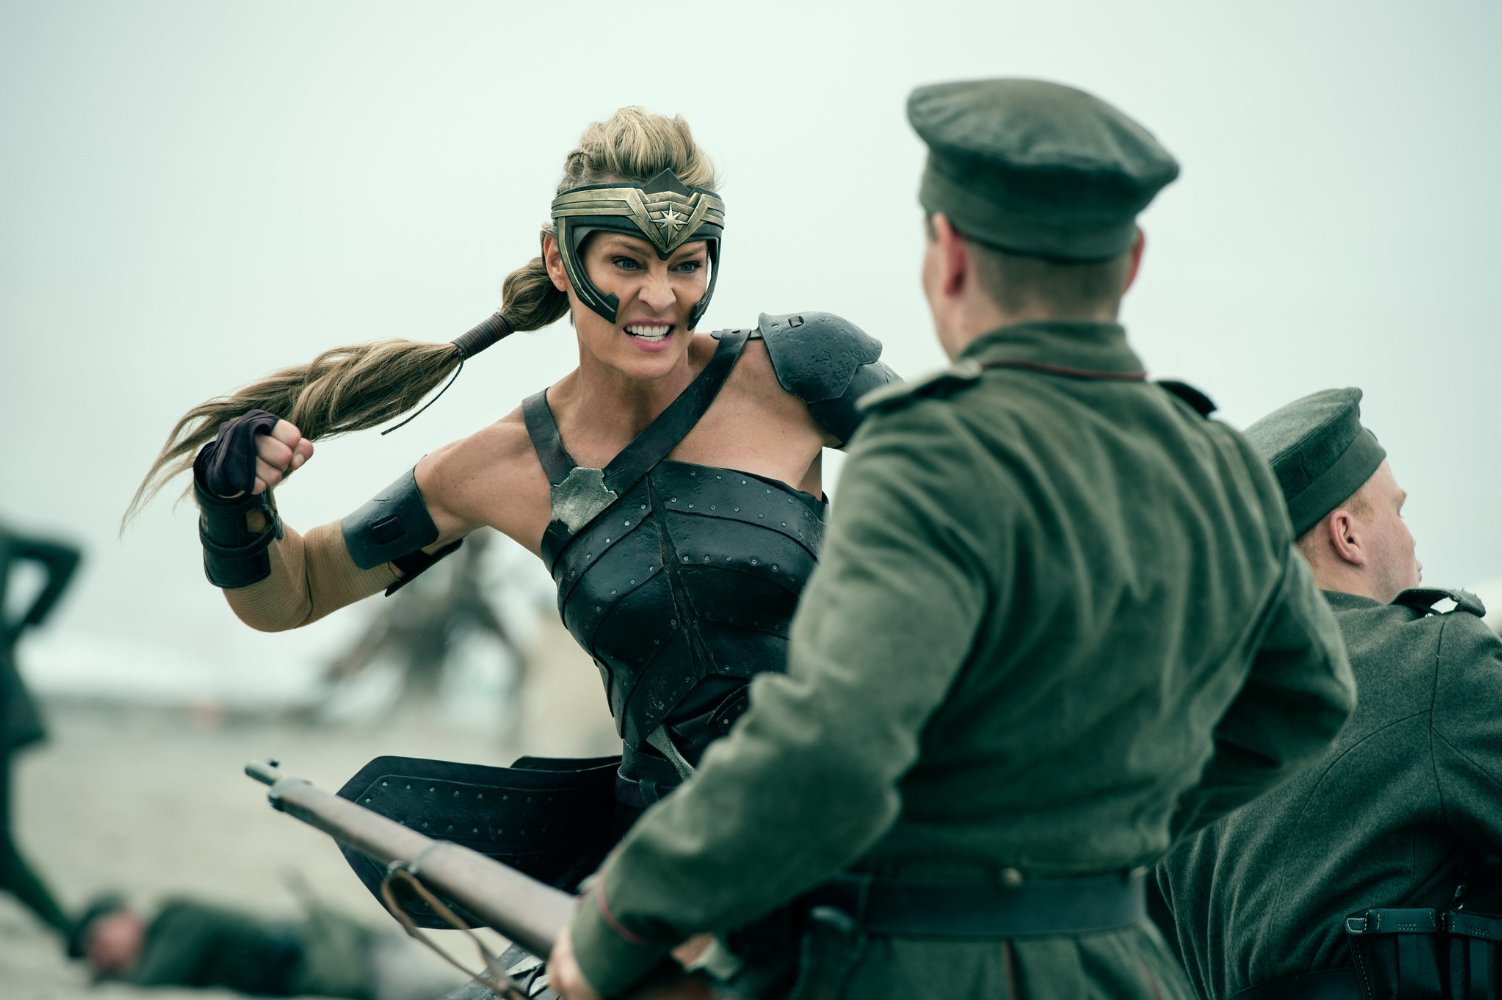 Wonder Woman (2017) .review and/or viewer comments - Christi